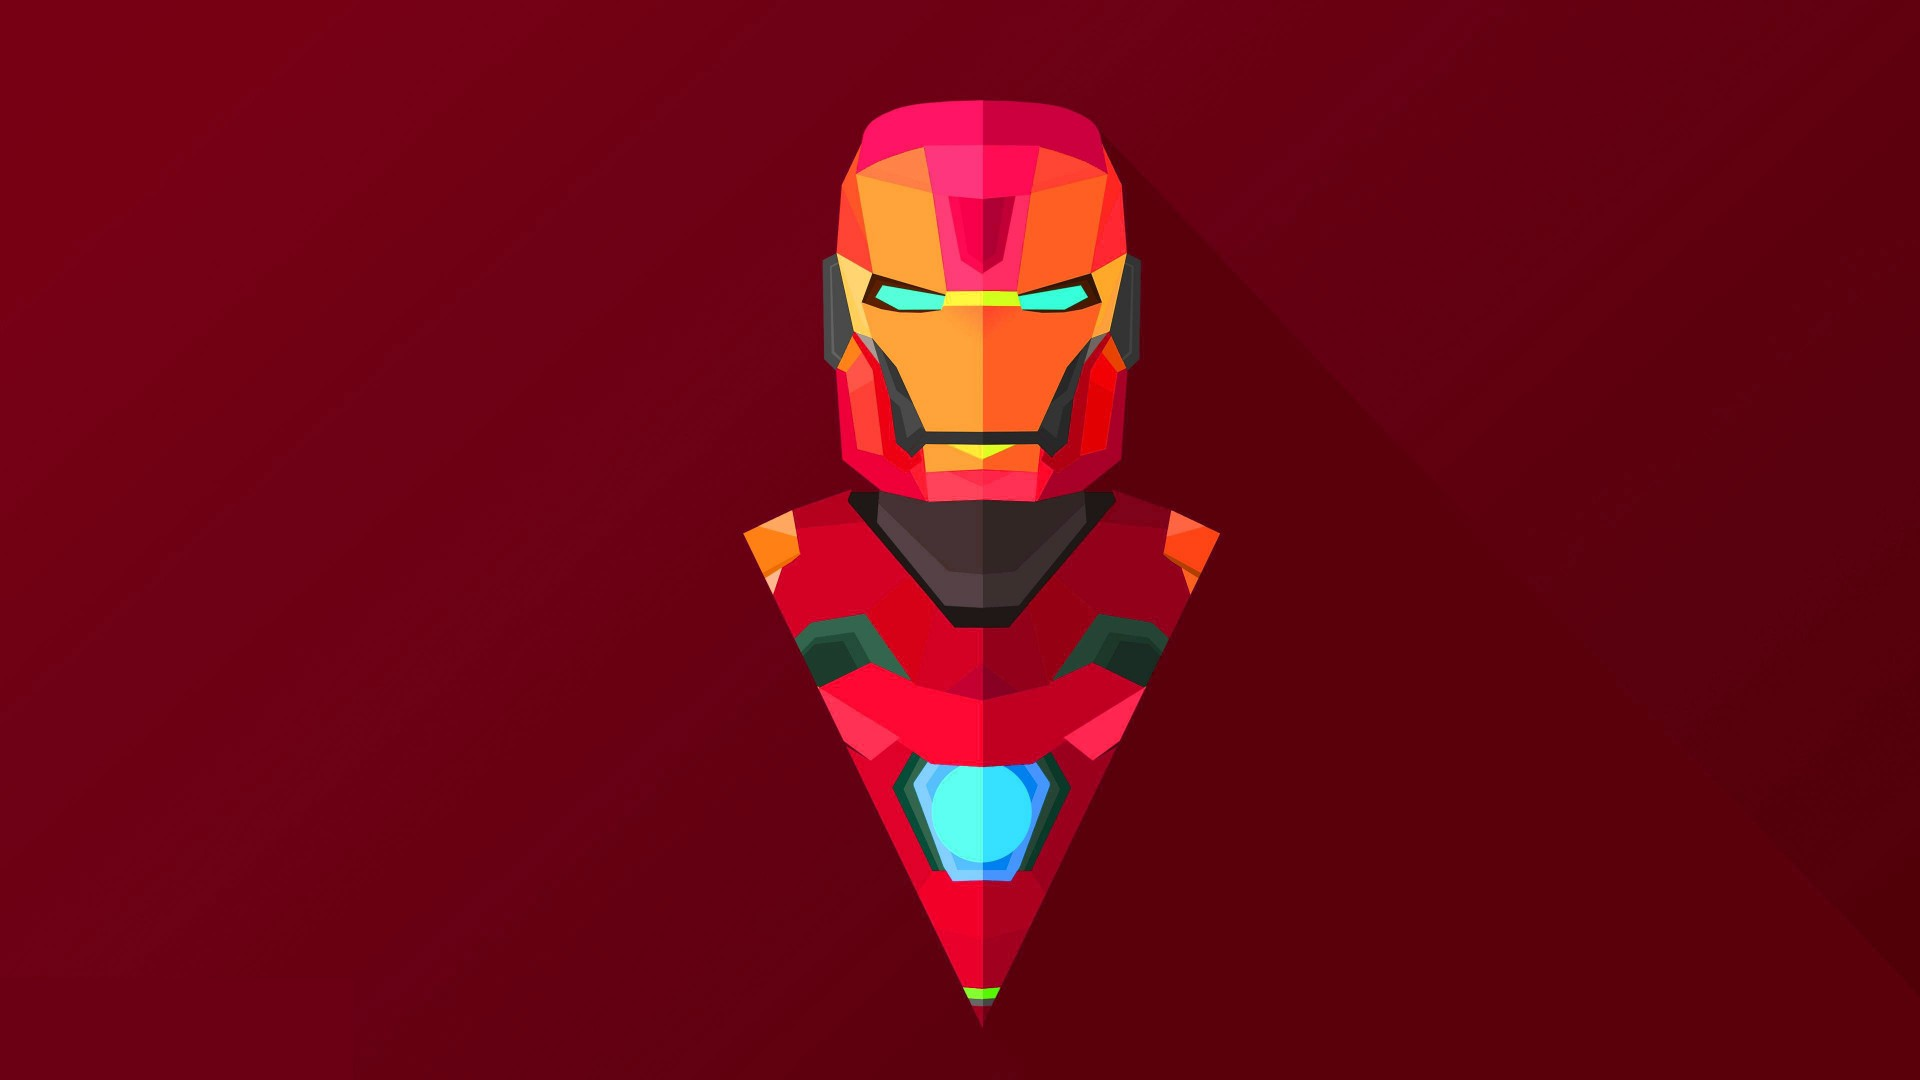 Wallpaper 4k Iron Man Abstract Abstract 13558 Page 623